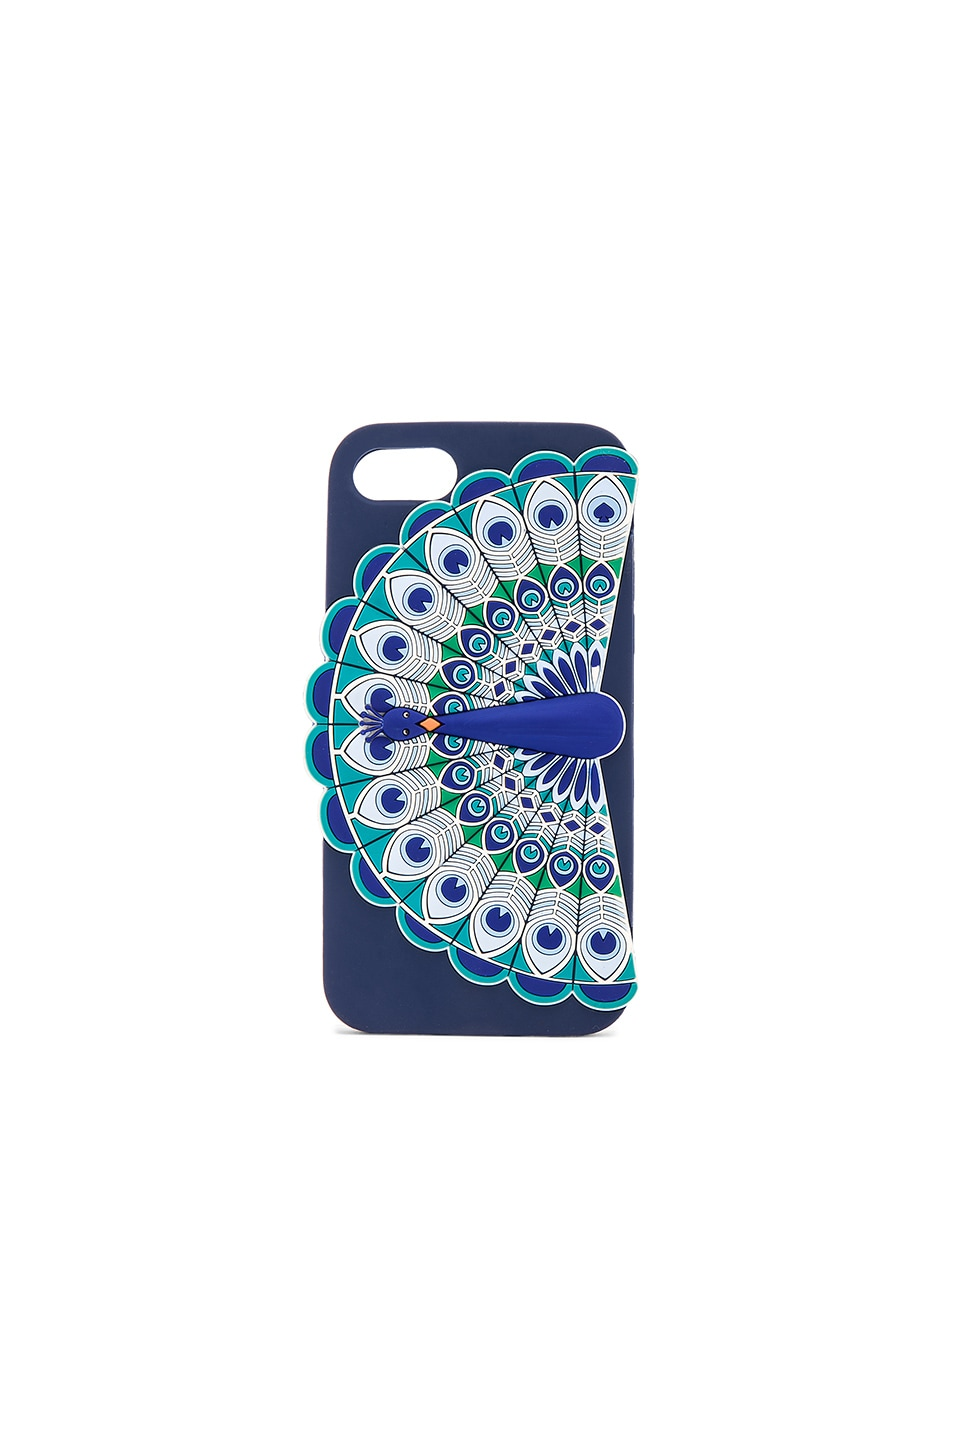 kate spade new york Silicone Peacock iPhone 7 Case in Blue Multi